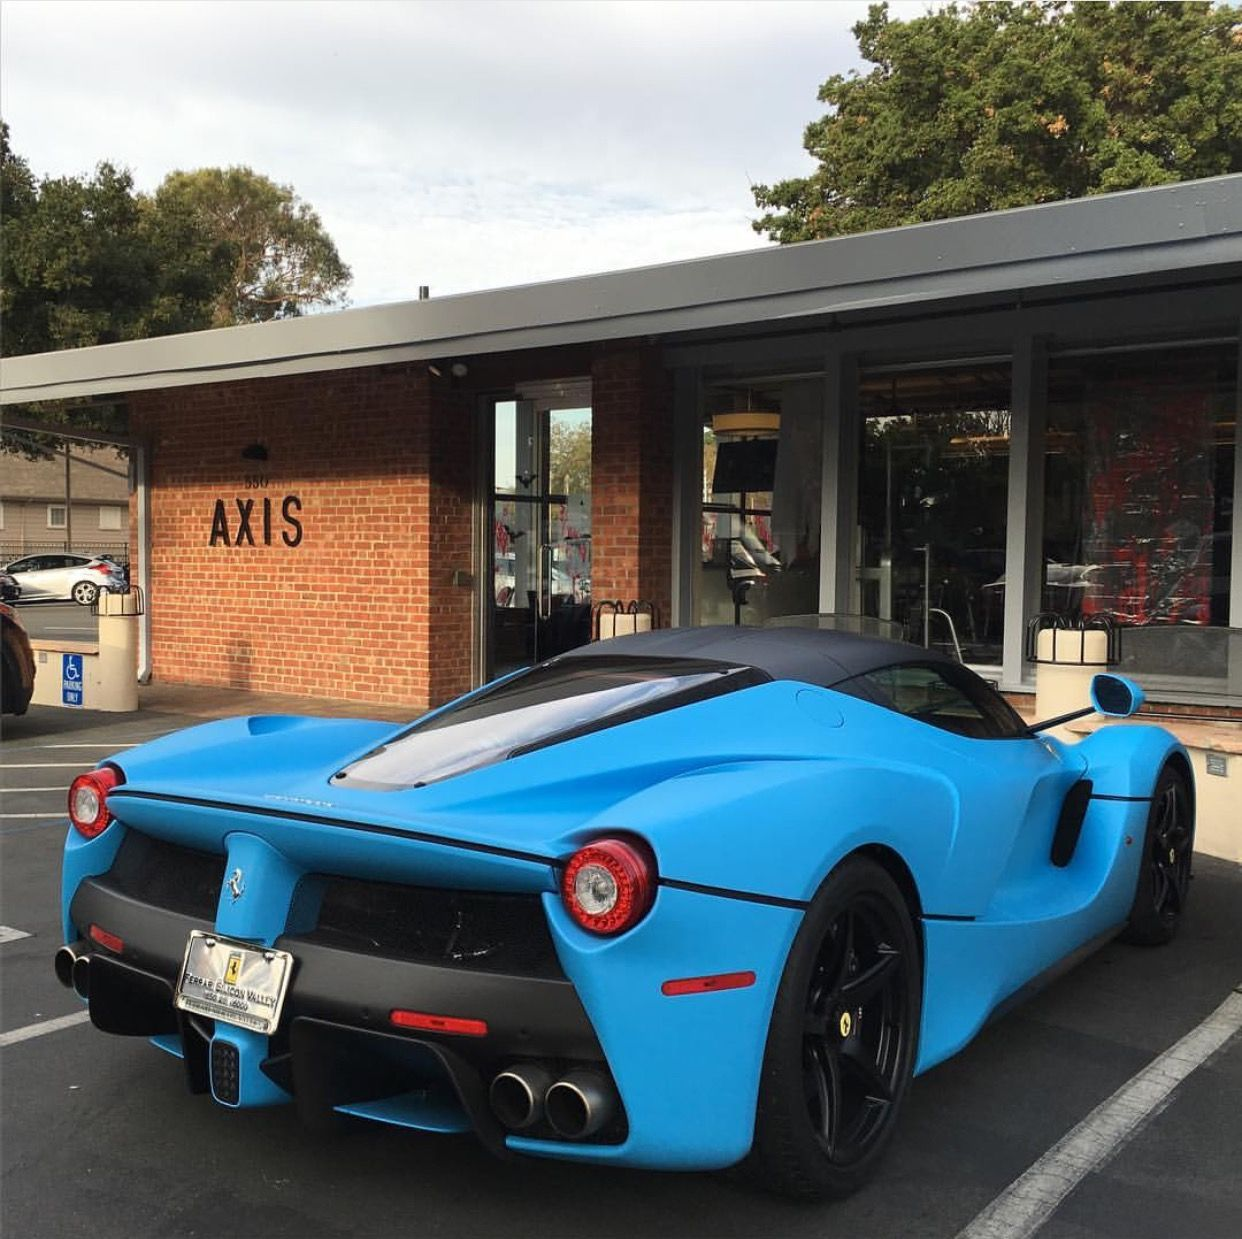 Ferrari LaFerrari painted in Matte Blue  Photo taken by: @buckblu on Instagram (He is also the owner of the car)